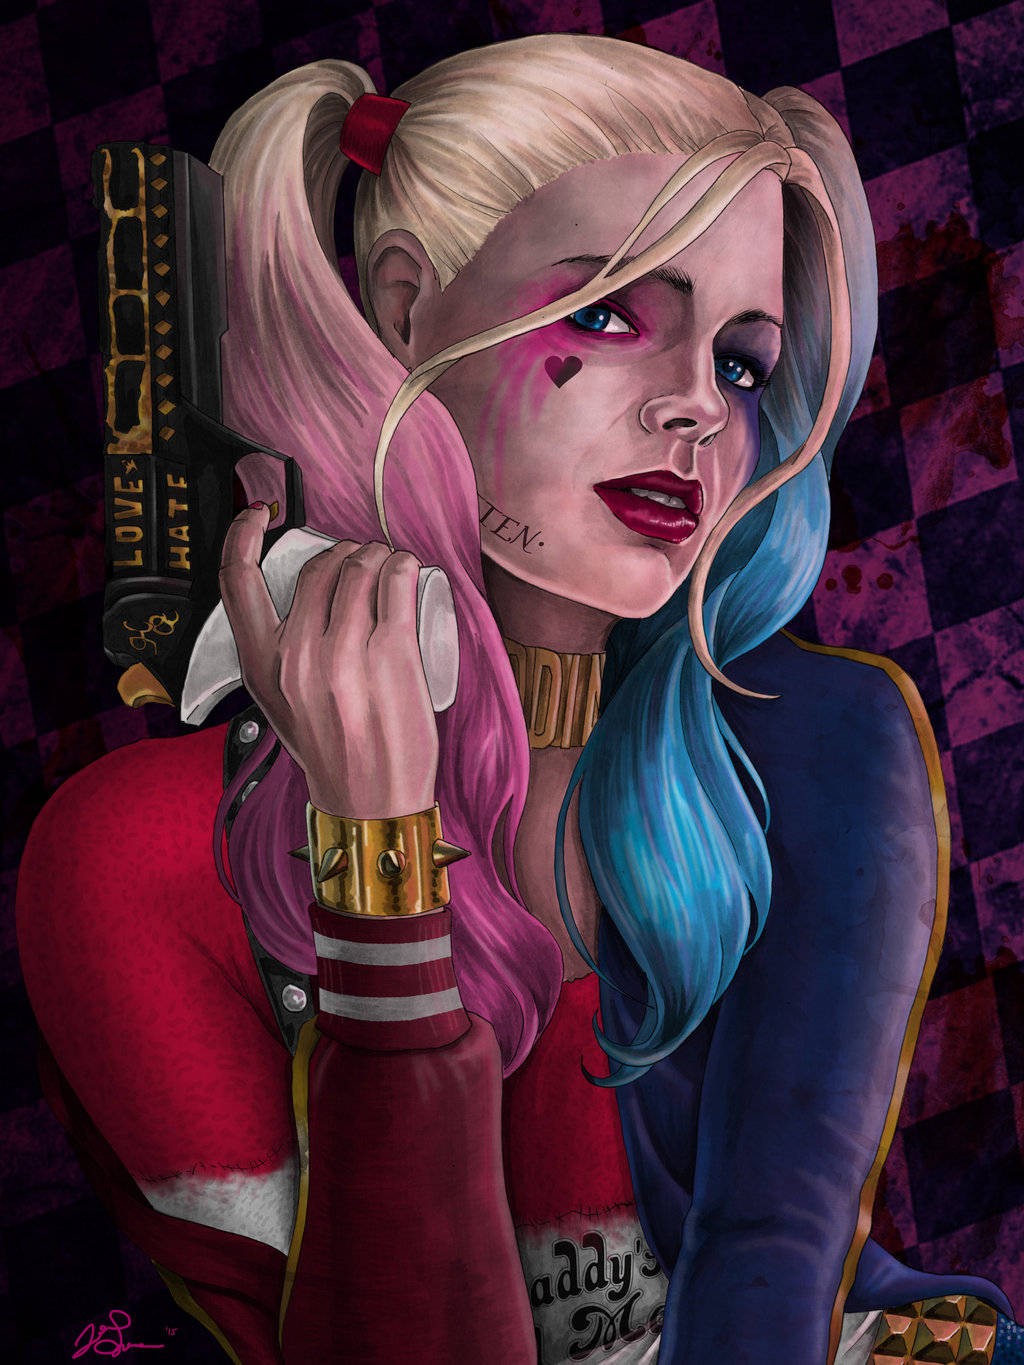 Free Download Margot Robbie As Harley Quinn By Jgiampietro